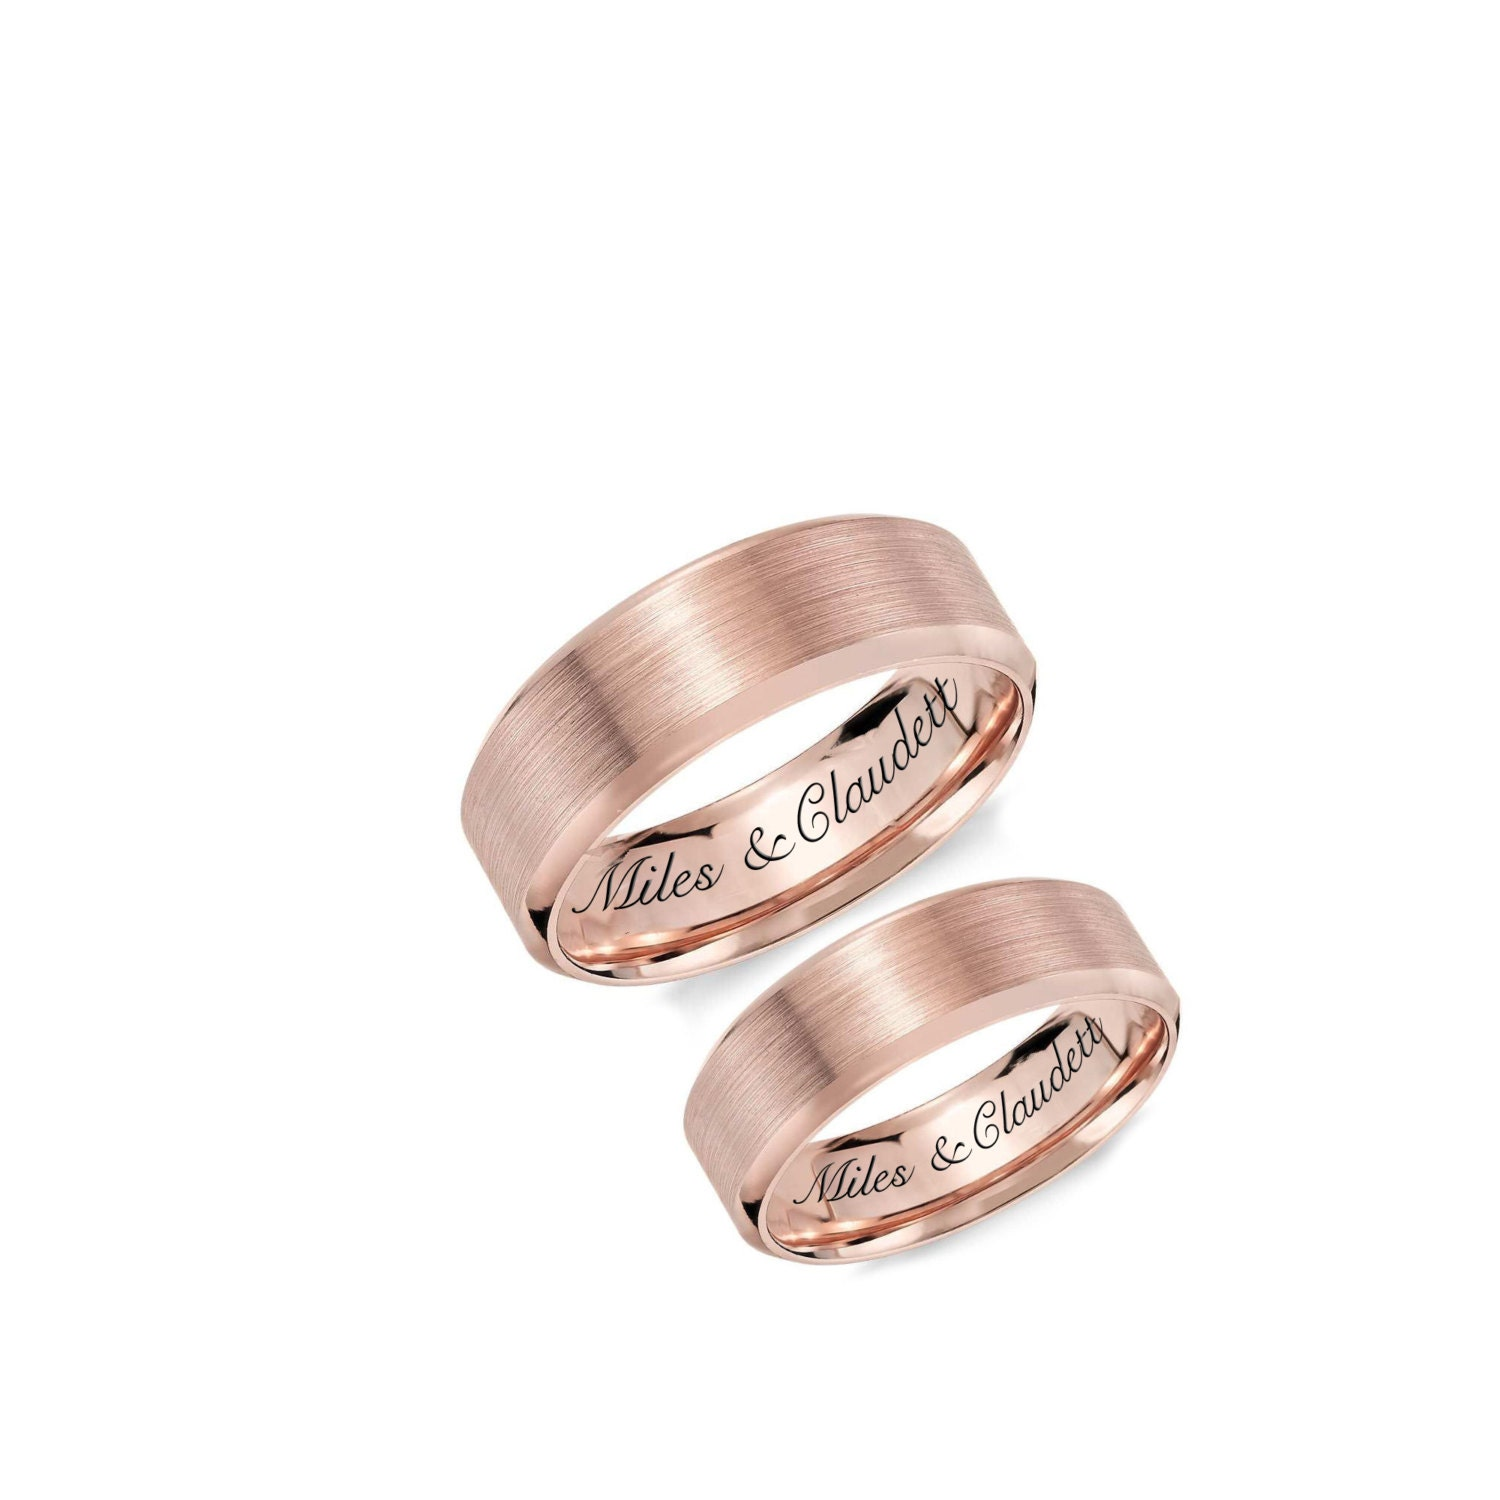 Personalized Rings Engraved Rings Rose Gold Ring Set